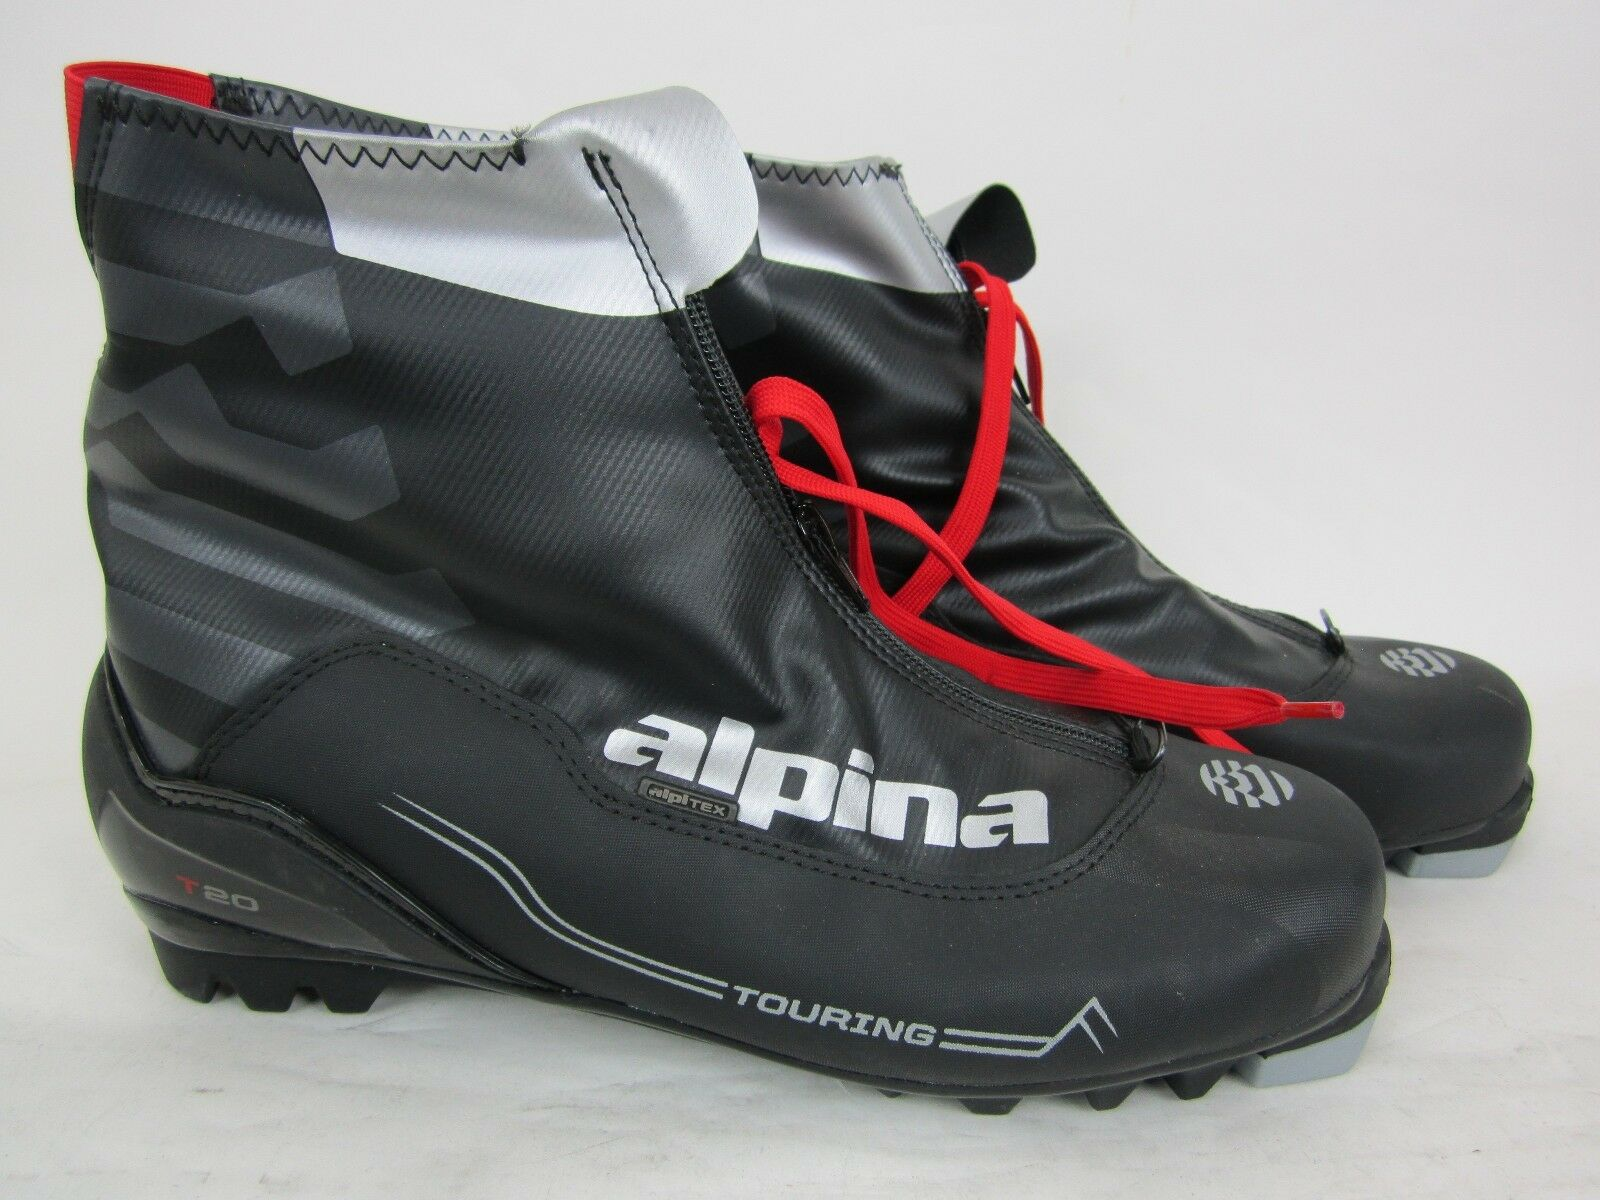 ALPINA T-20 CROSS COUNTRY SKI BOOT - BLK RED - SIZE 36